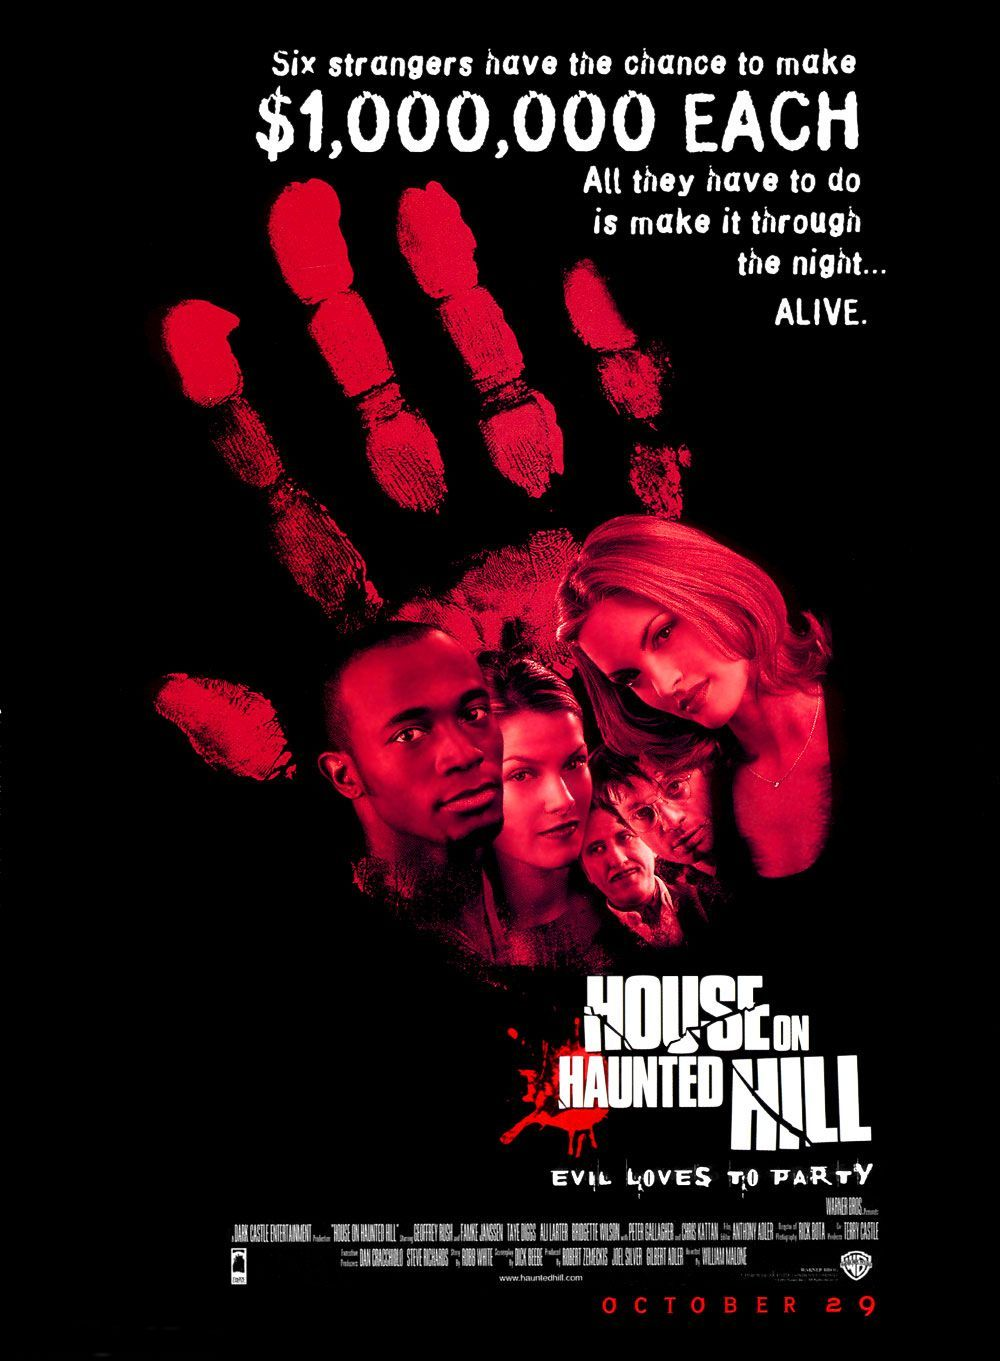 House on Haunted Hill kapak